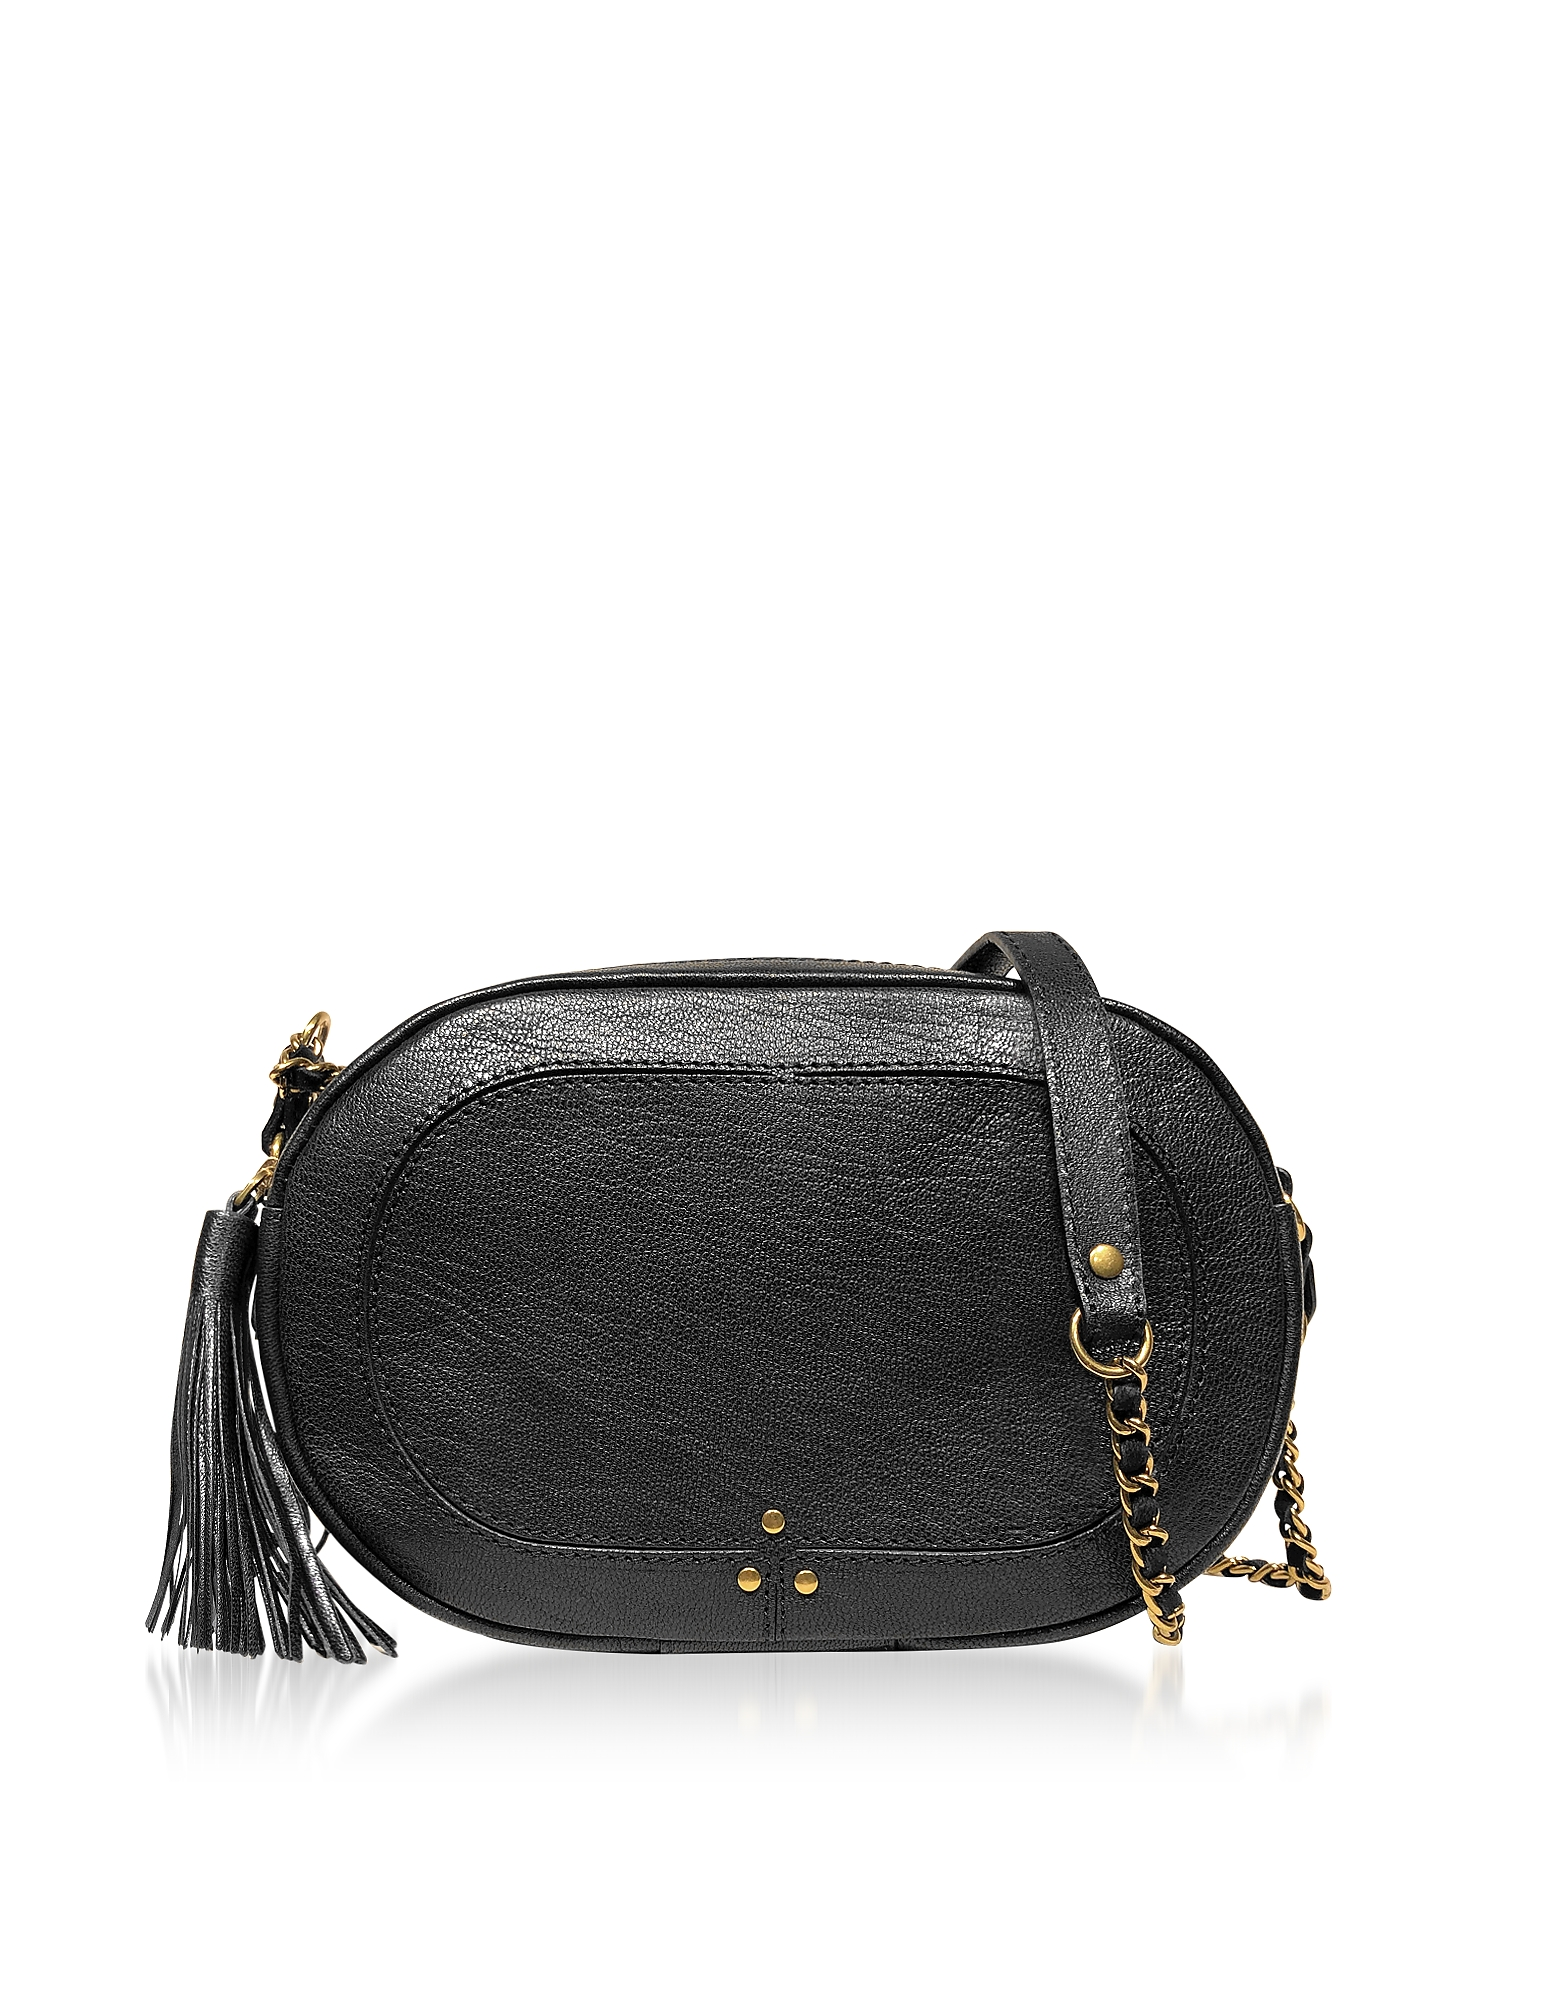 JEROME DREYFUSS | Jerome Dreyfuss Designer Handbags, Black Leather Shoulder Bag | Goxip